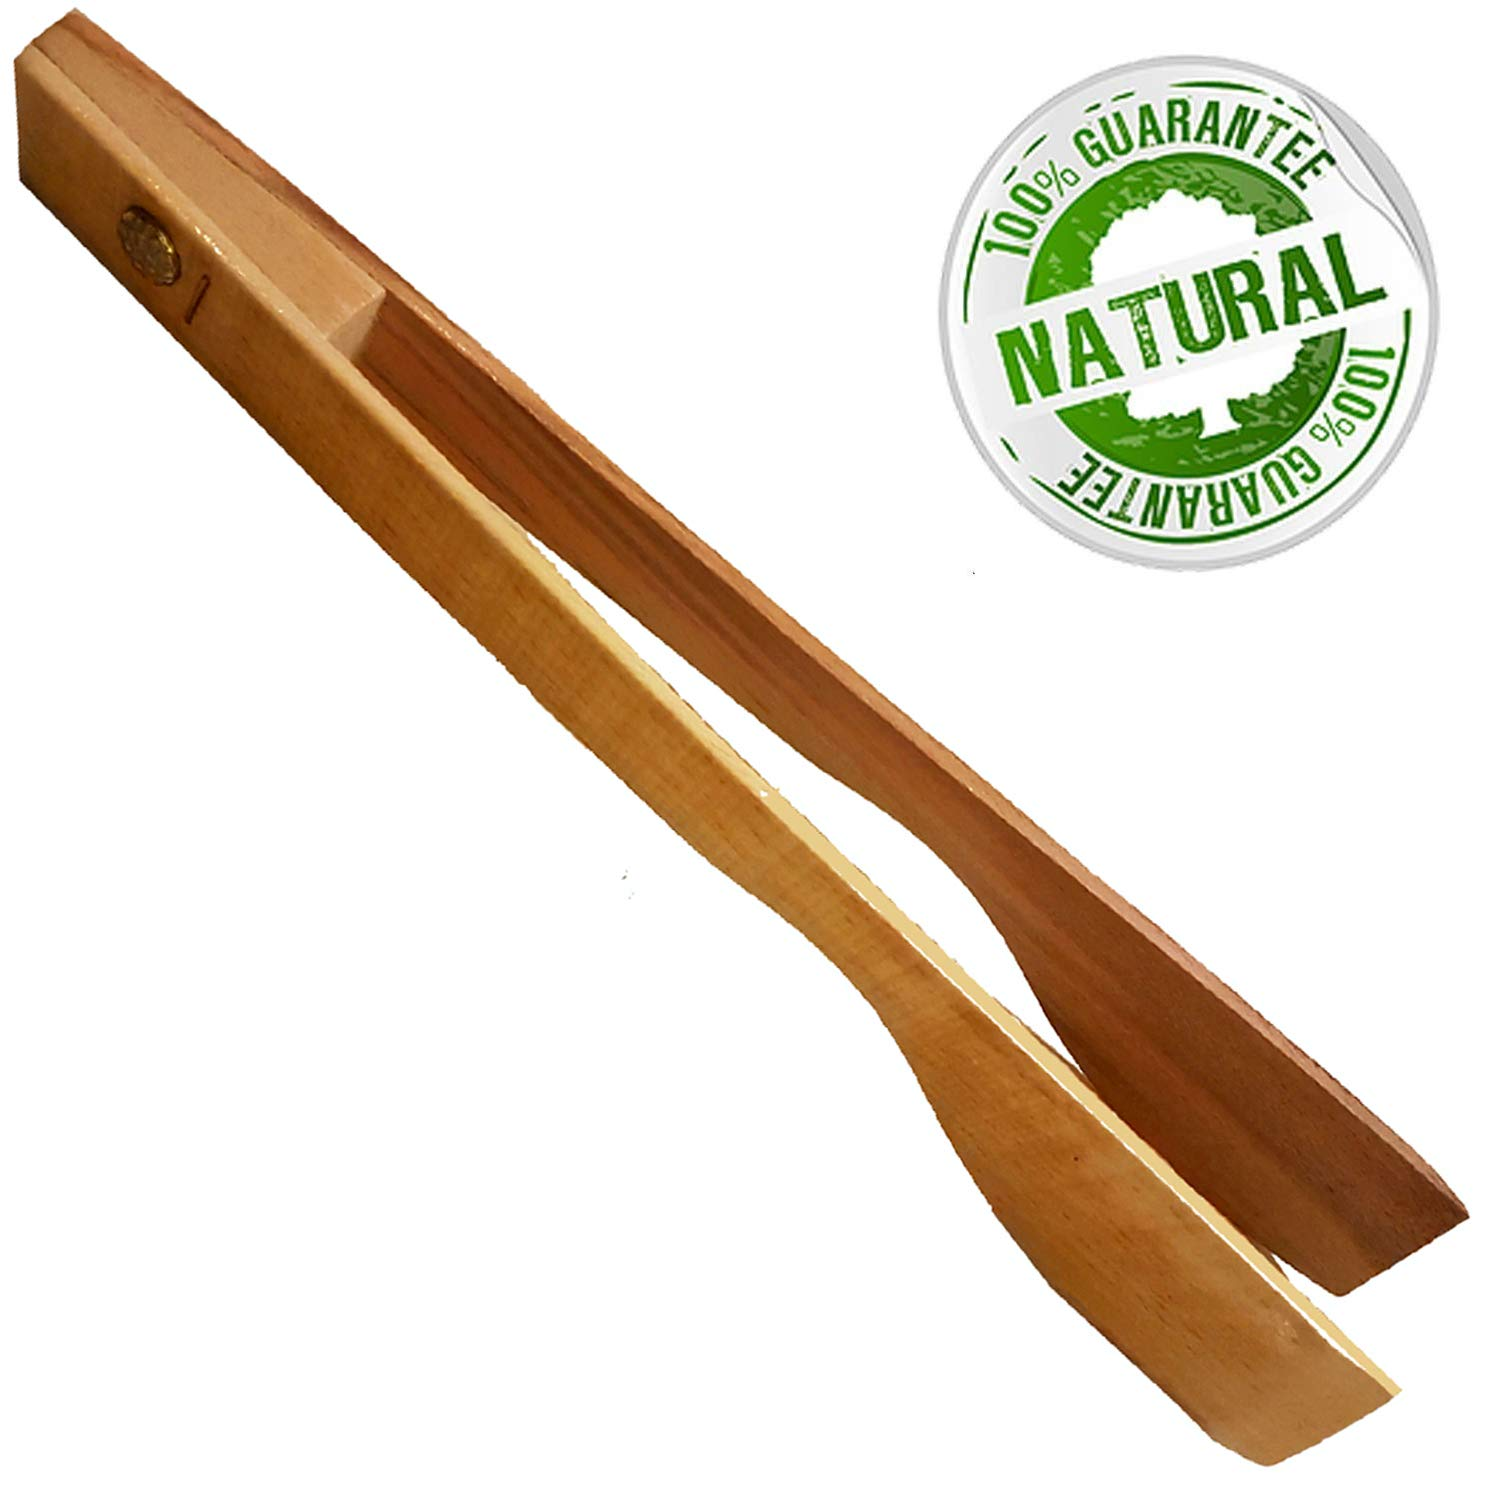 Wooden Toaster Kitchen Tongs 12 Inch - Large Wood Tongs Utensils for Cooking and Holding, Toast, Bacon, Muffin, Bagel, Bread%100 Natural Beechwood